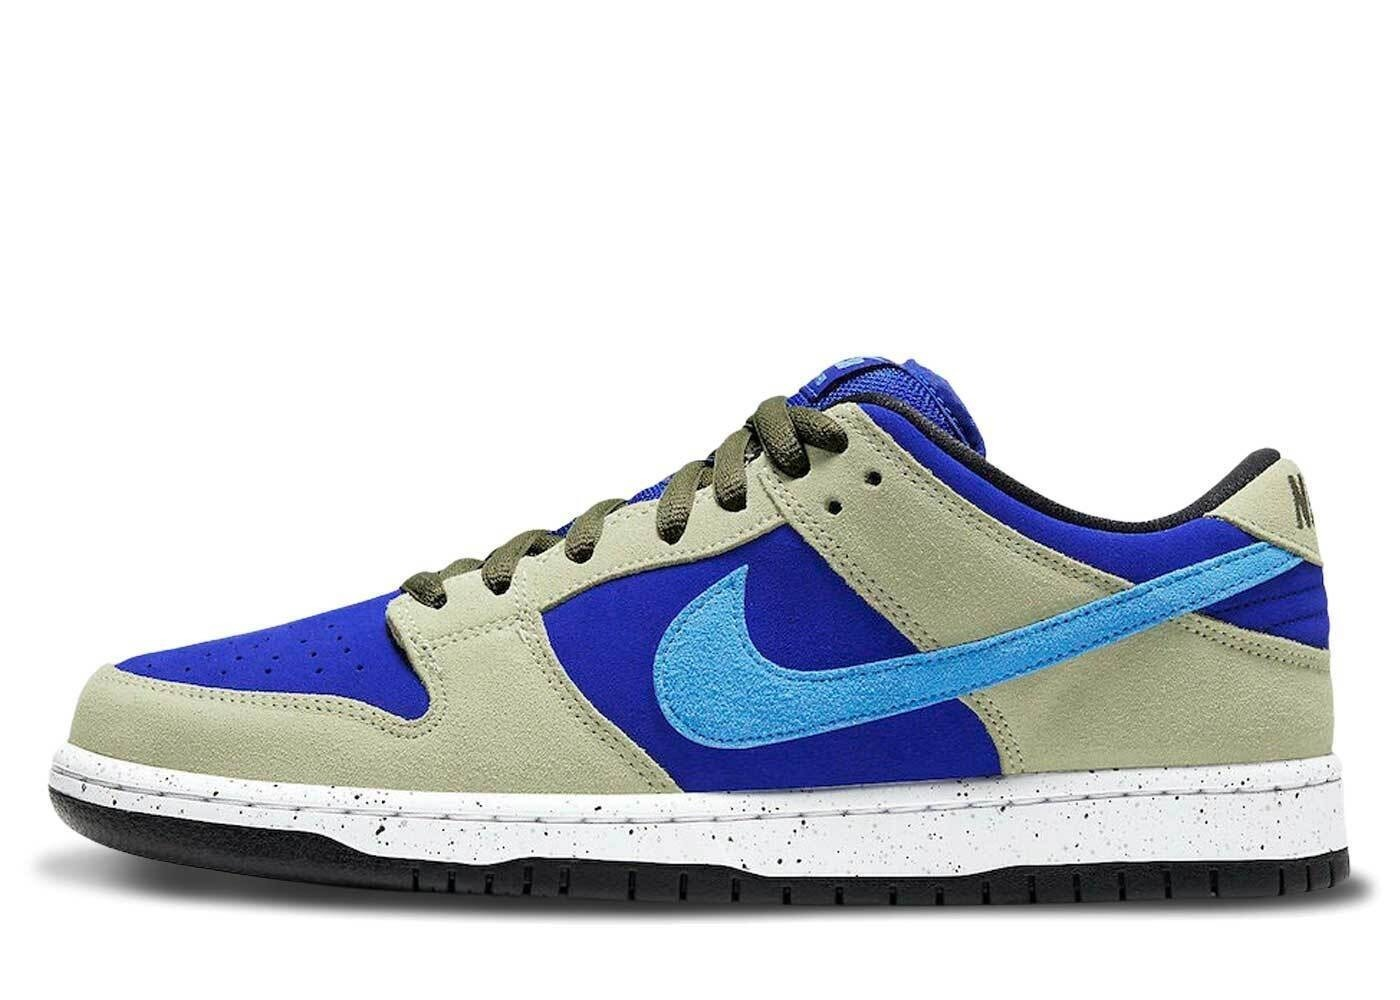 Nike SB Dunk Low Celadonの写真